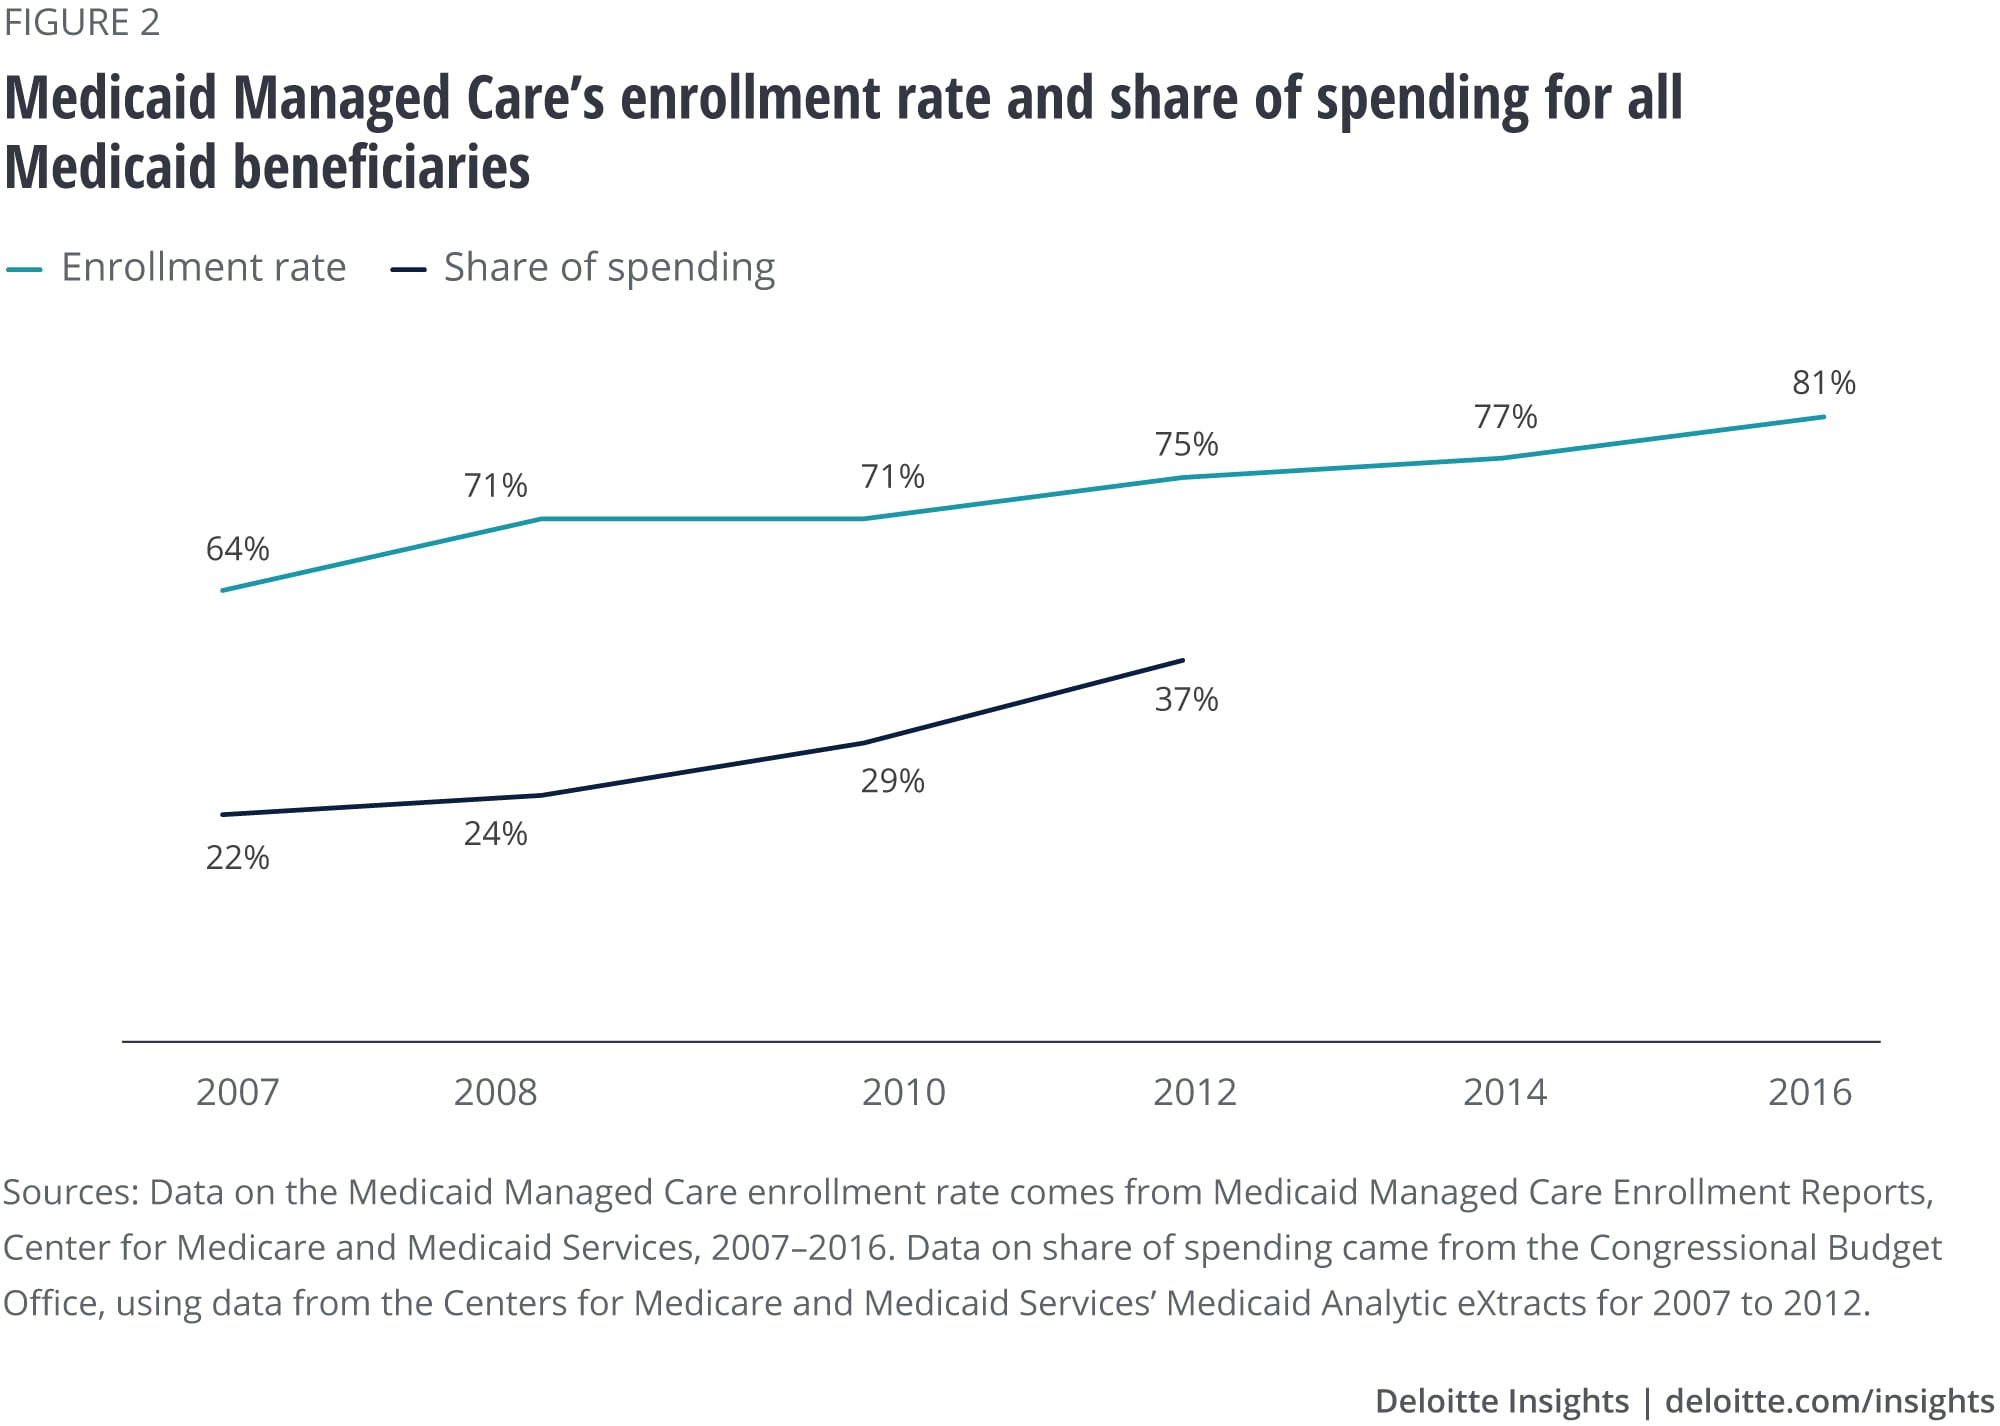 Medicaid Managed Care's enrollment rate and share of spending for all Medicaid beneficiaries